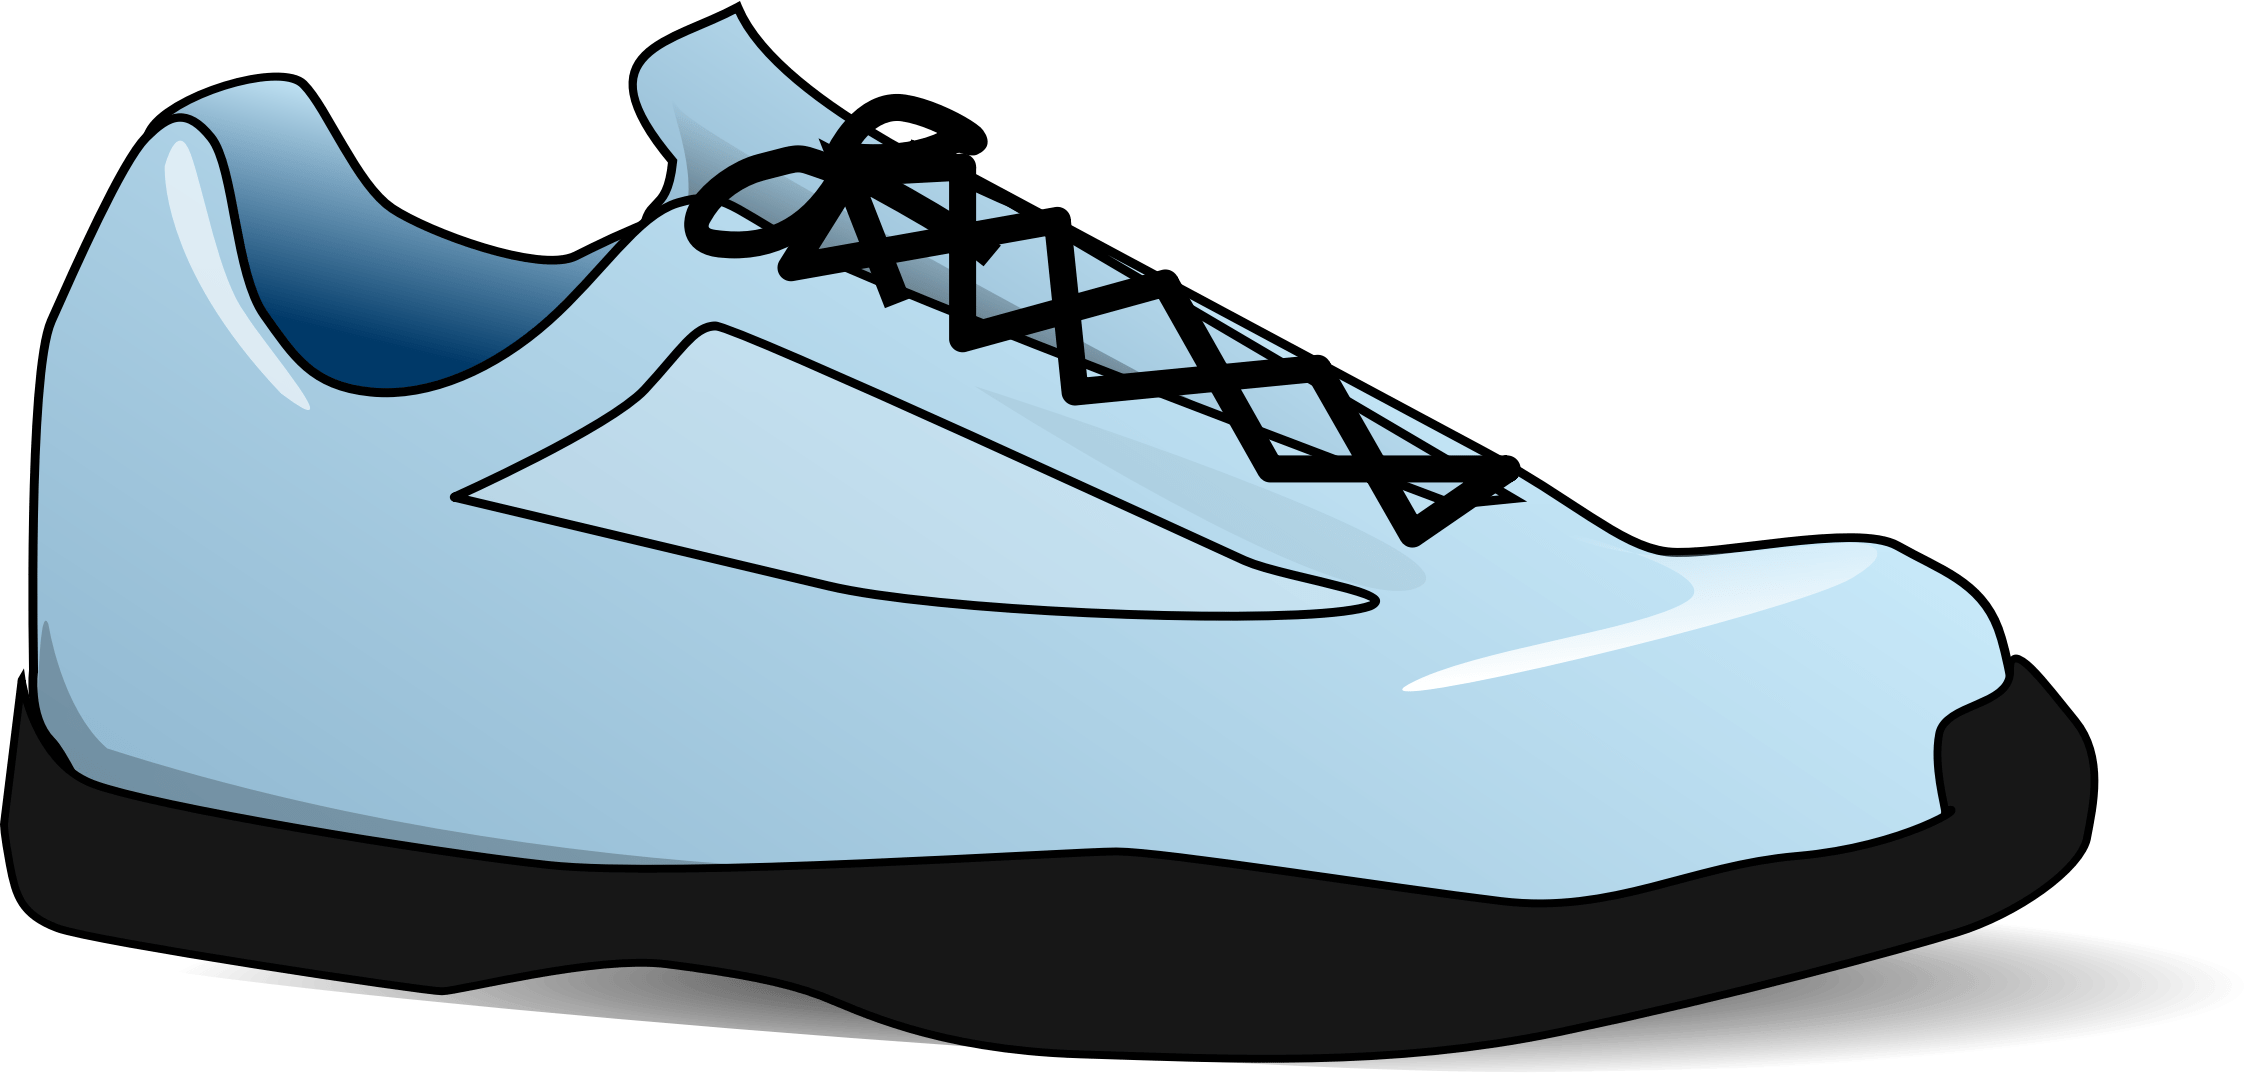 Converse clipart sport shoe. Download clip art drawing